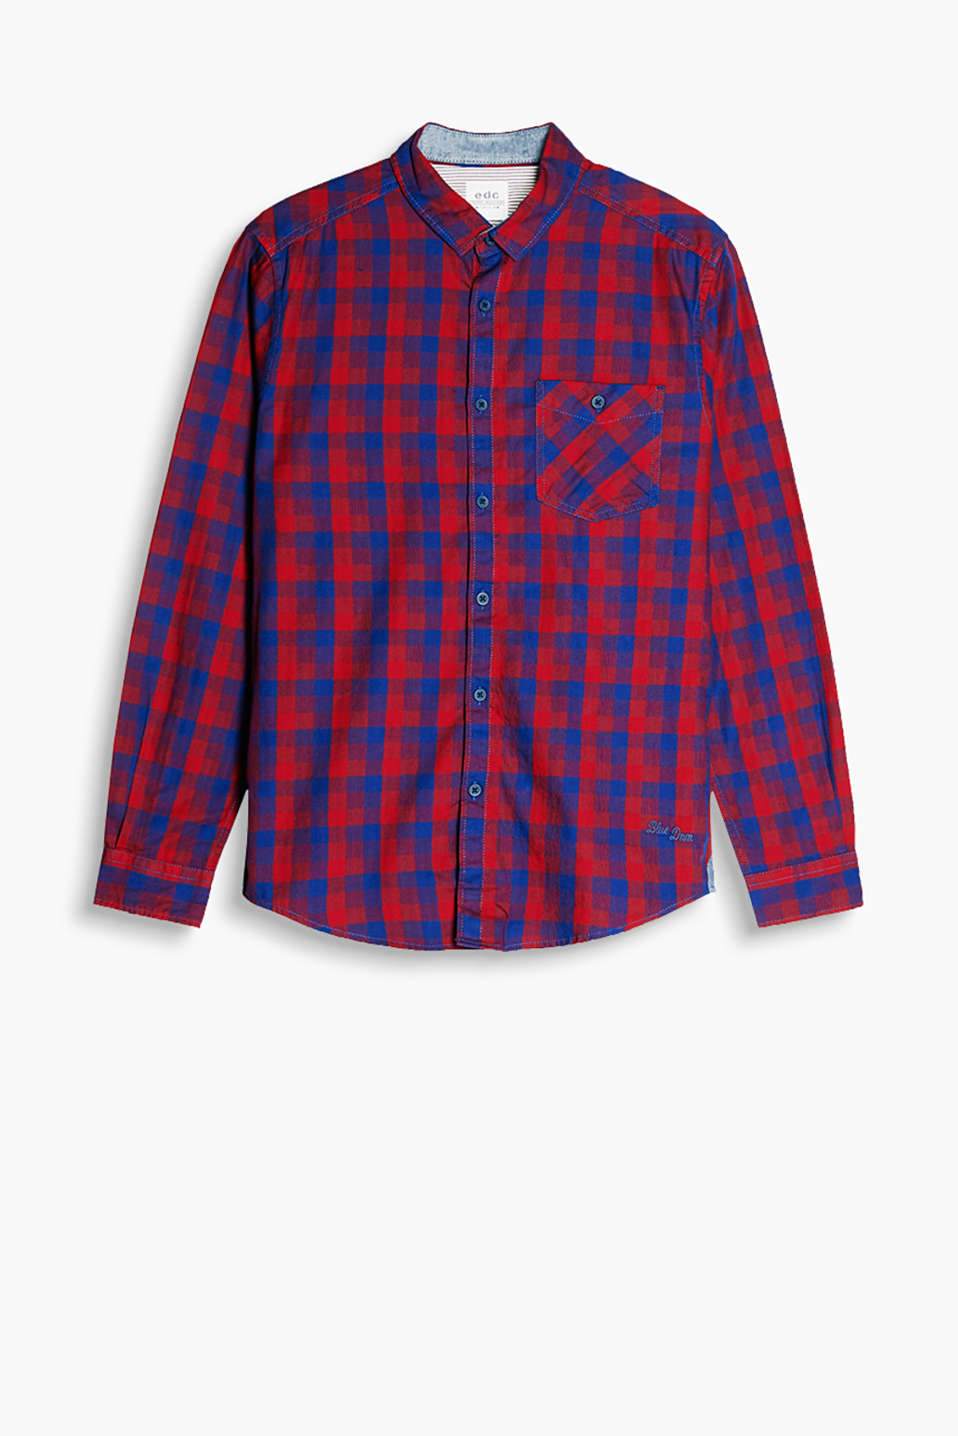 Shirt with a narrow collar, button-fastening breast pocket and a check pattern on pure cotton fabric